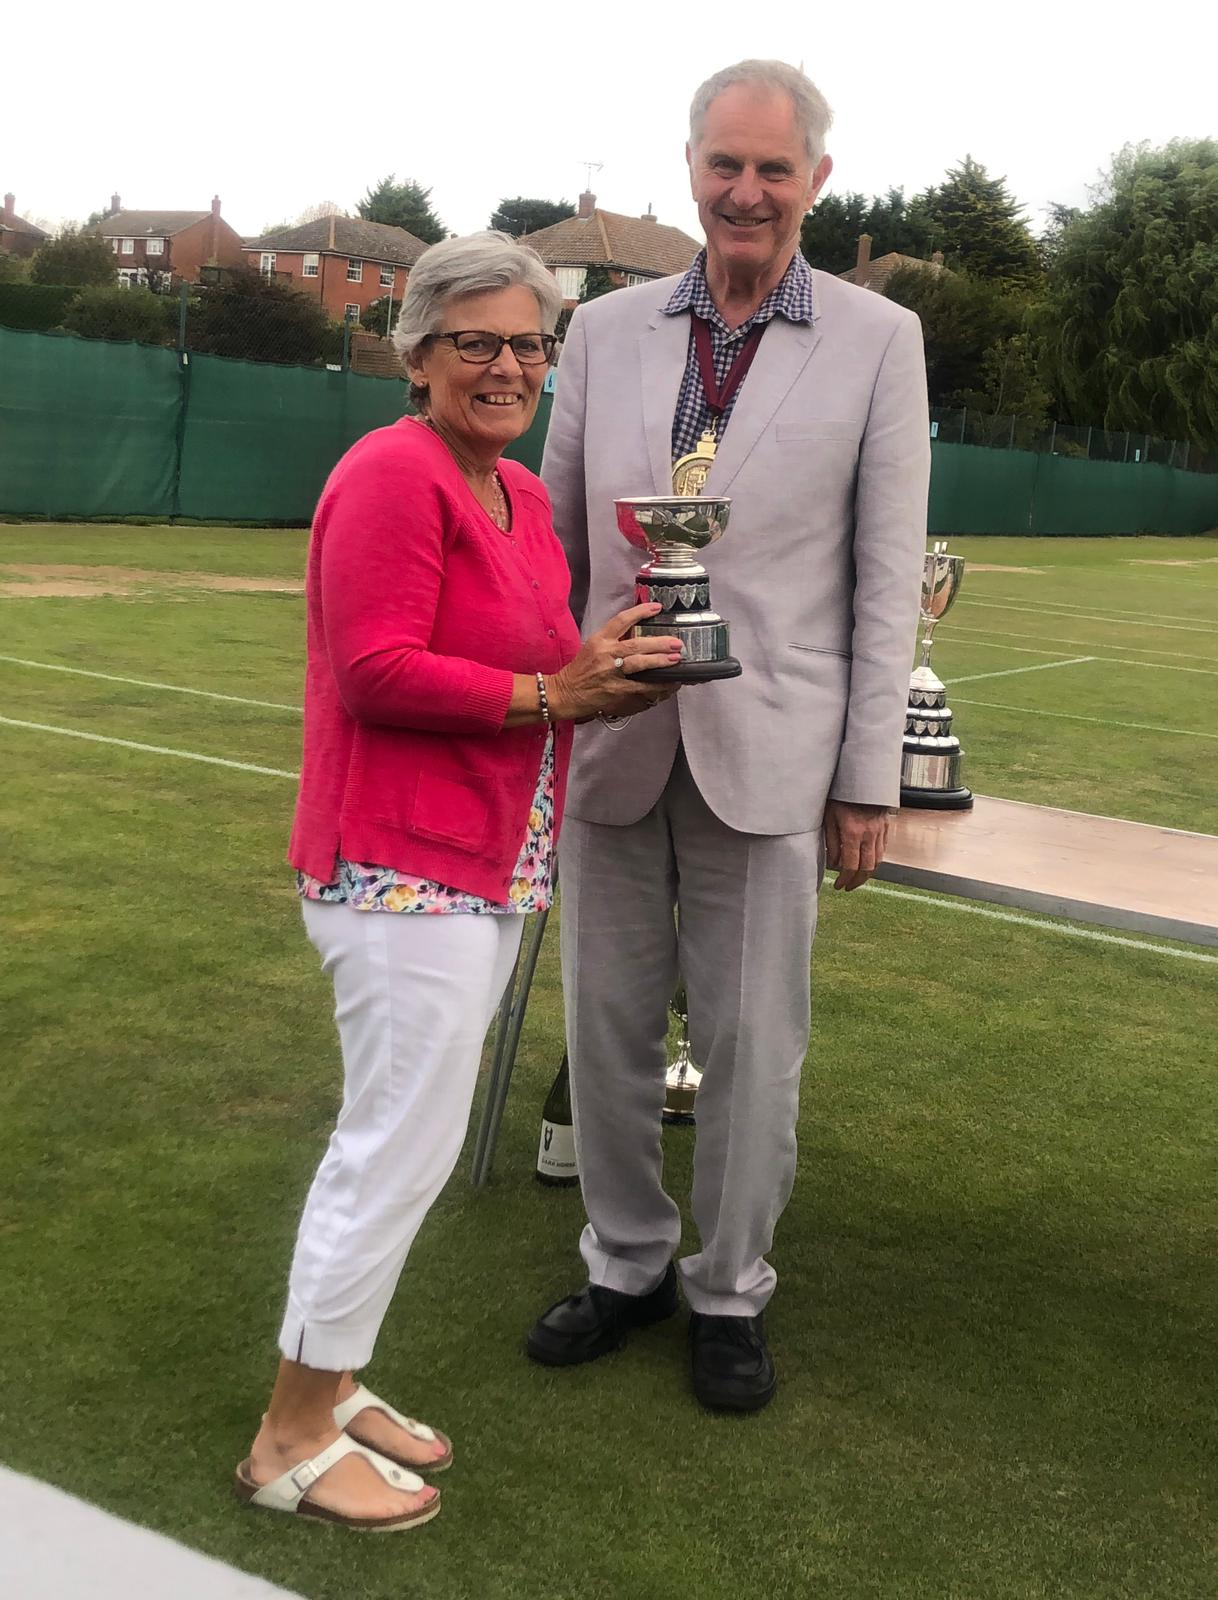 Julie Smith - Runner Up in the Restricted Ladies Singles